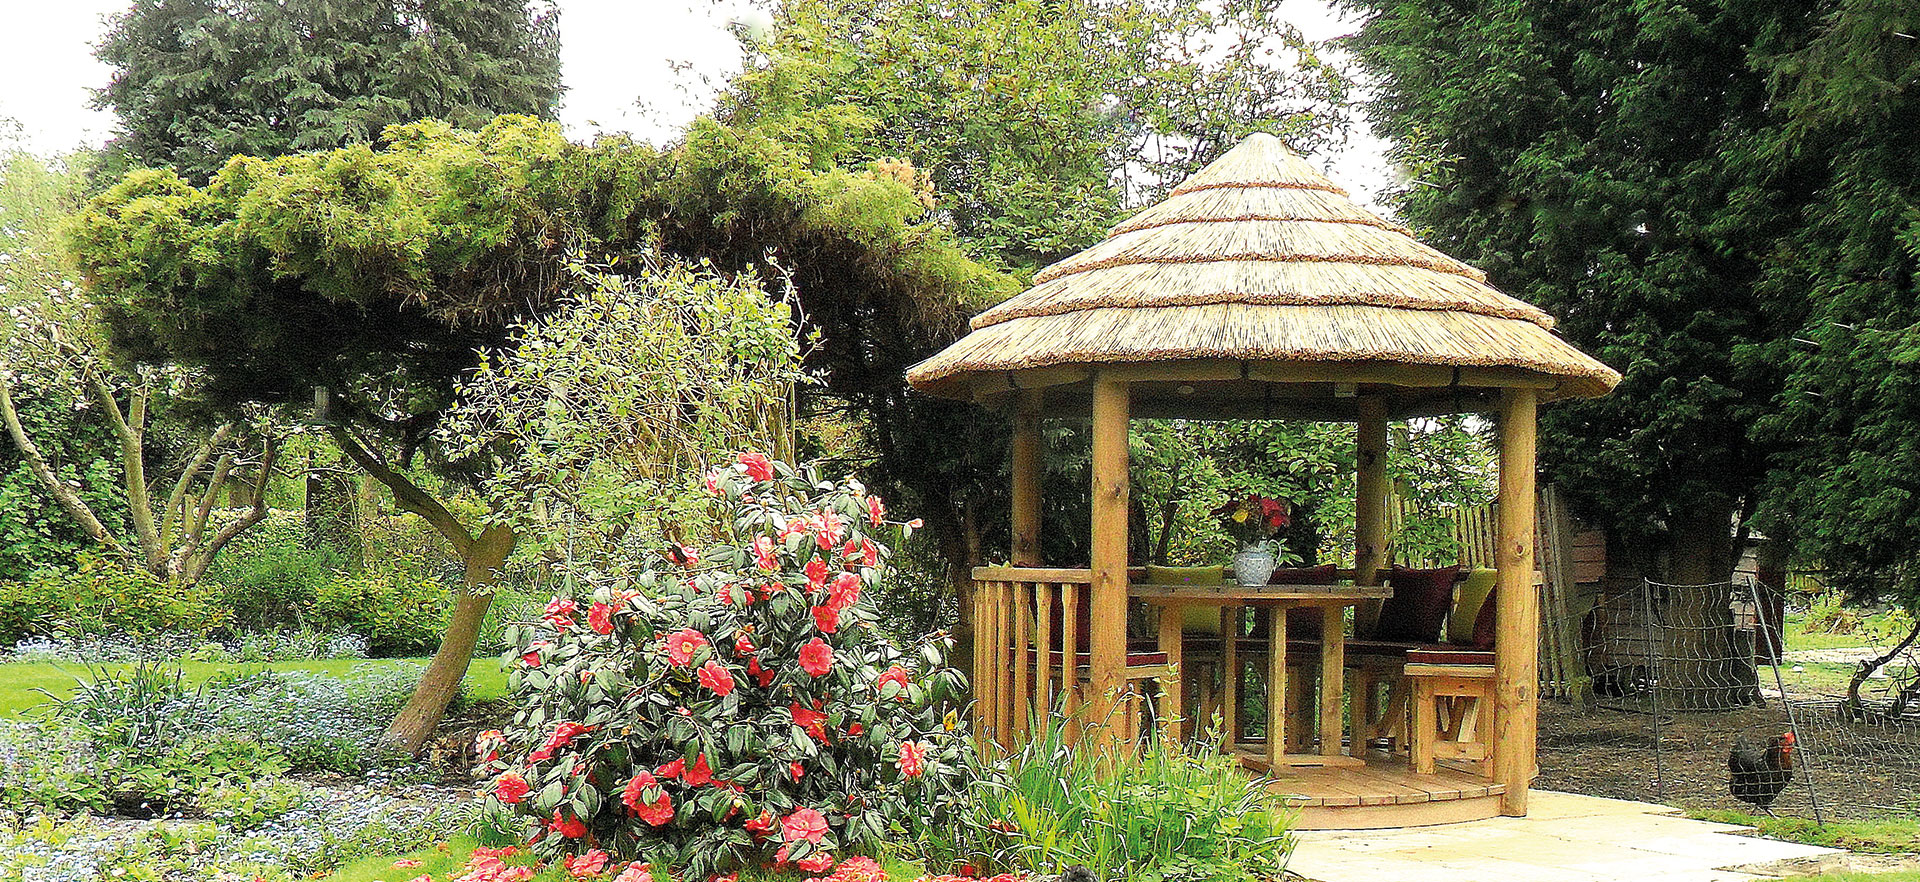 2.5 metre thatched gazebo next to floral foliage